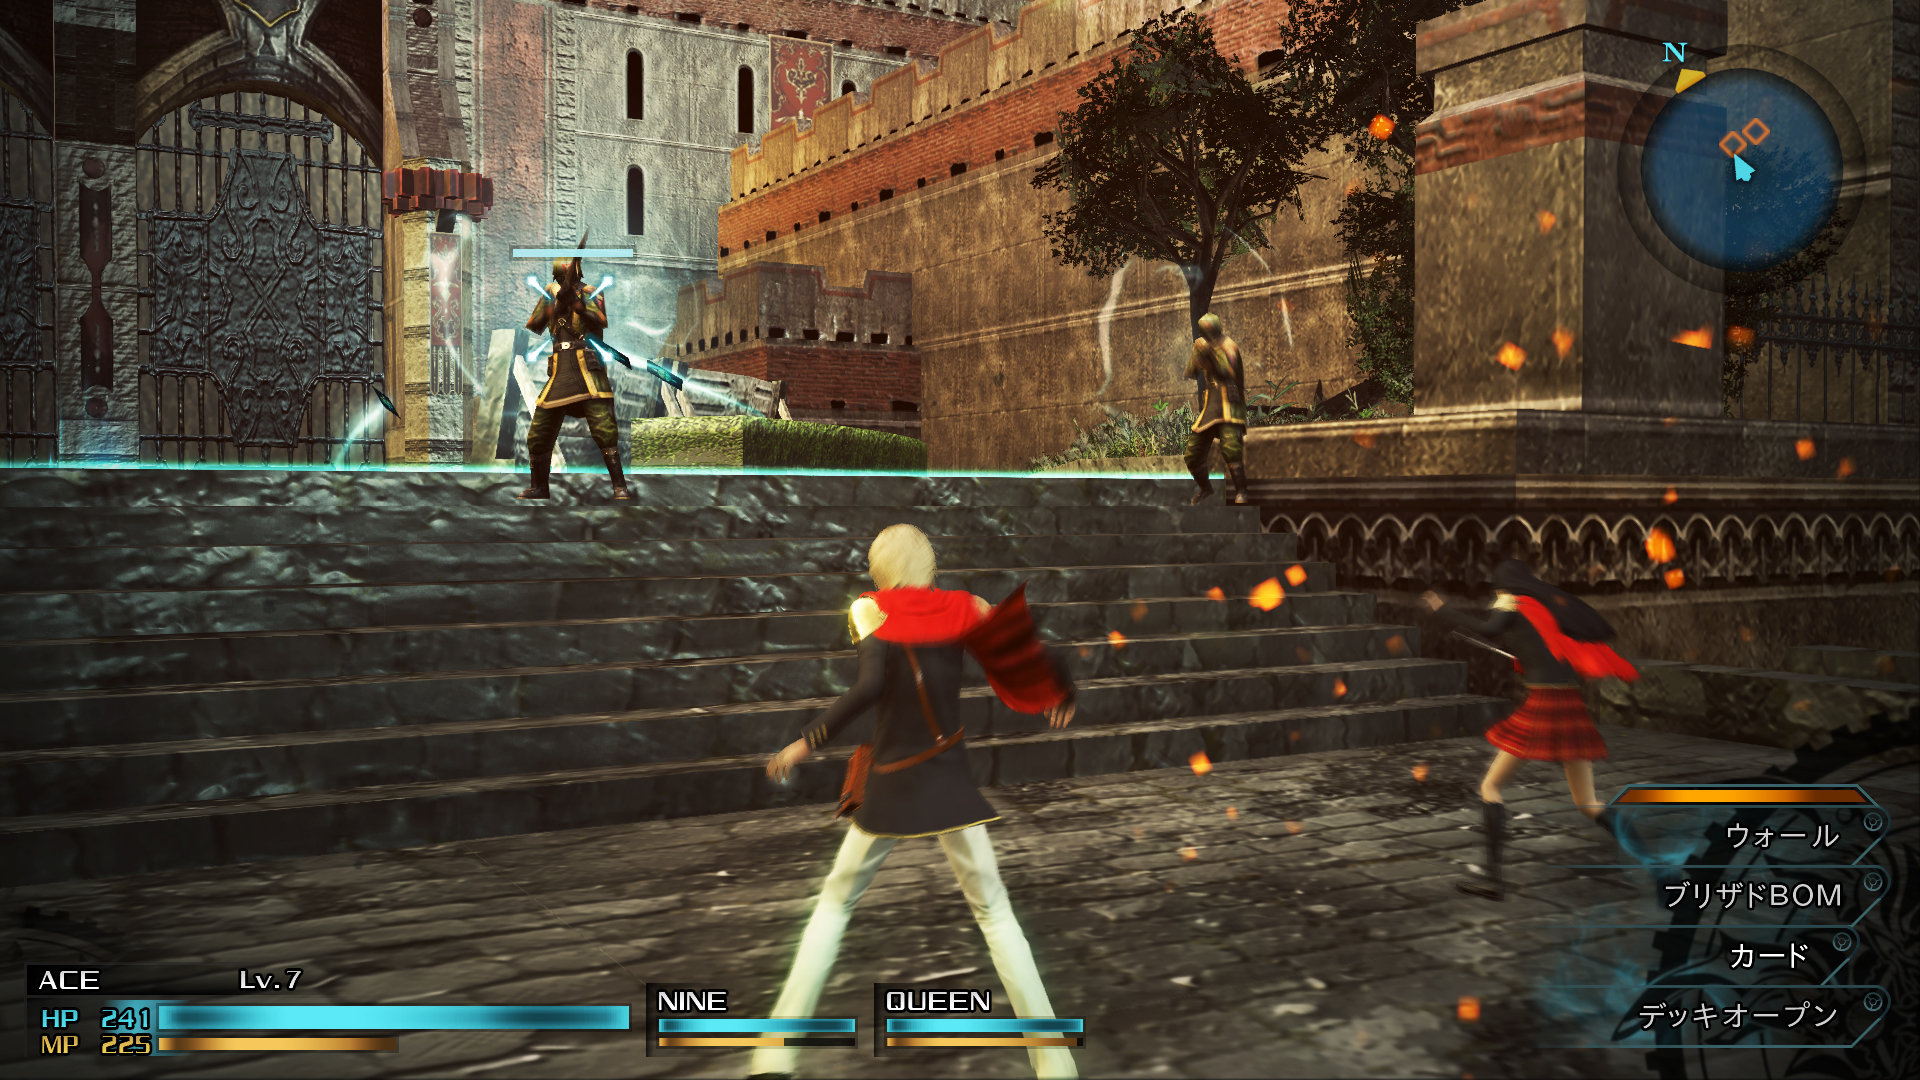 final-fantasy-type-0-hd-screen-01-ps4-us